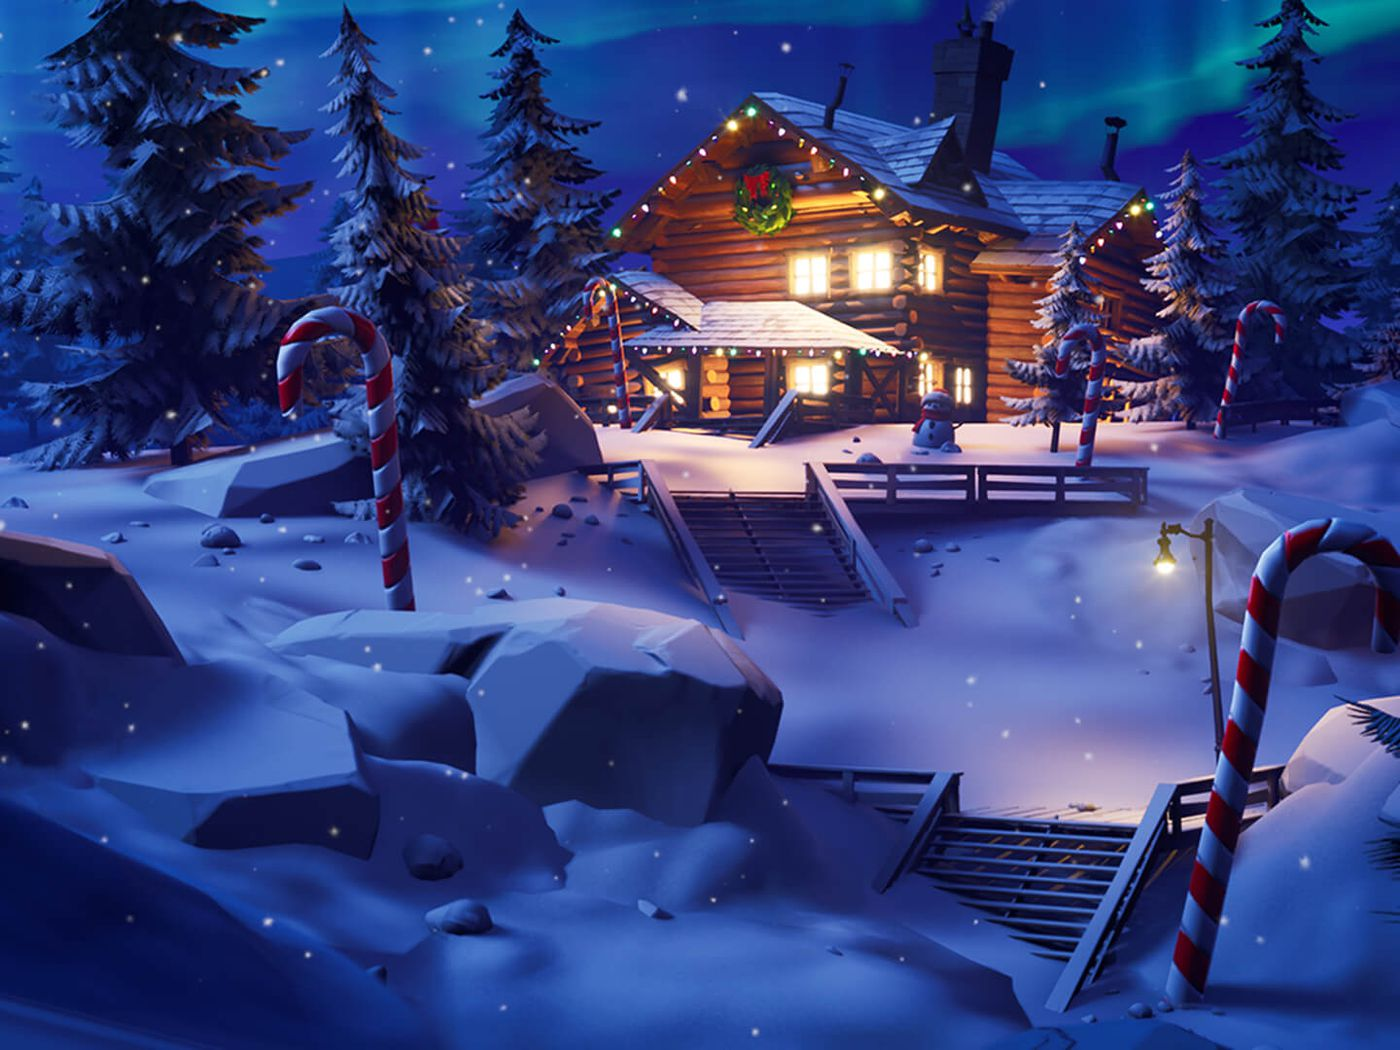 Do We Get Free Gifts For Fortnite December 17 2019 Fortnite Players Get Free Skins For The Winterfestival Event Polygon